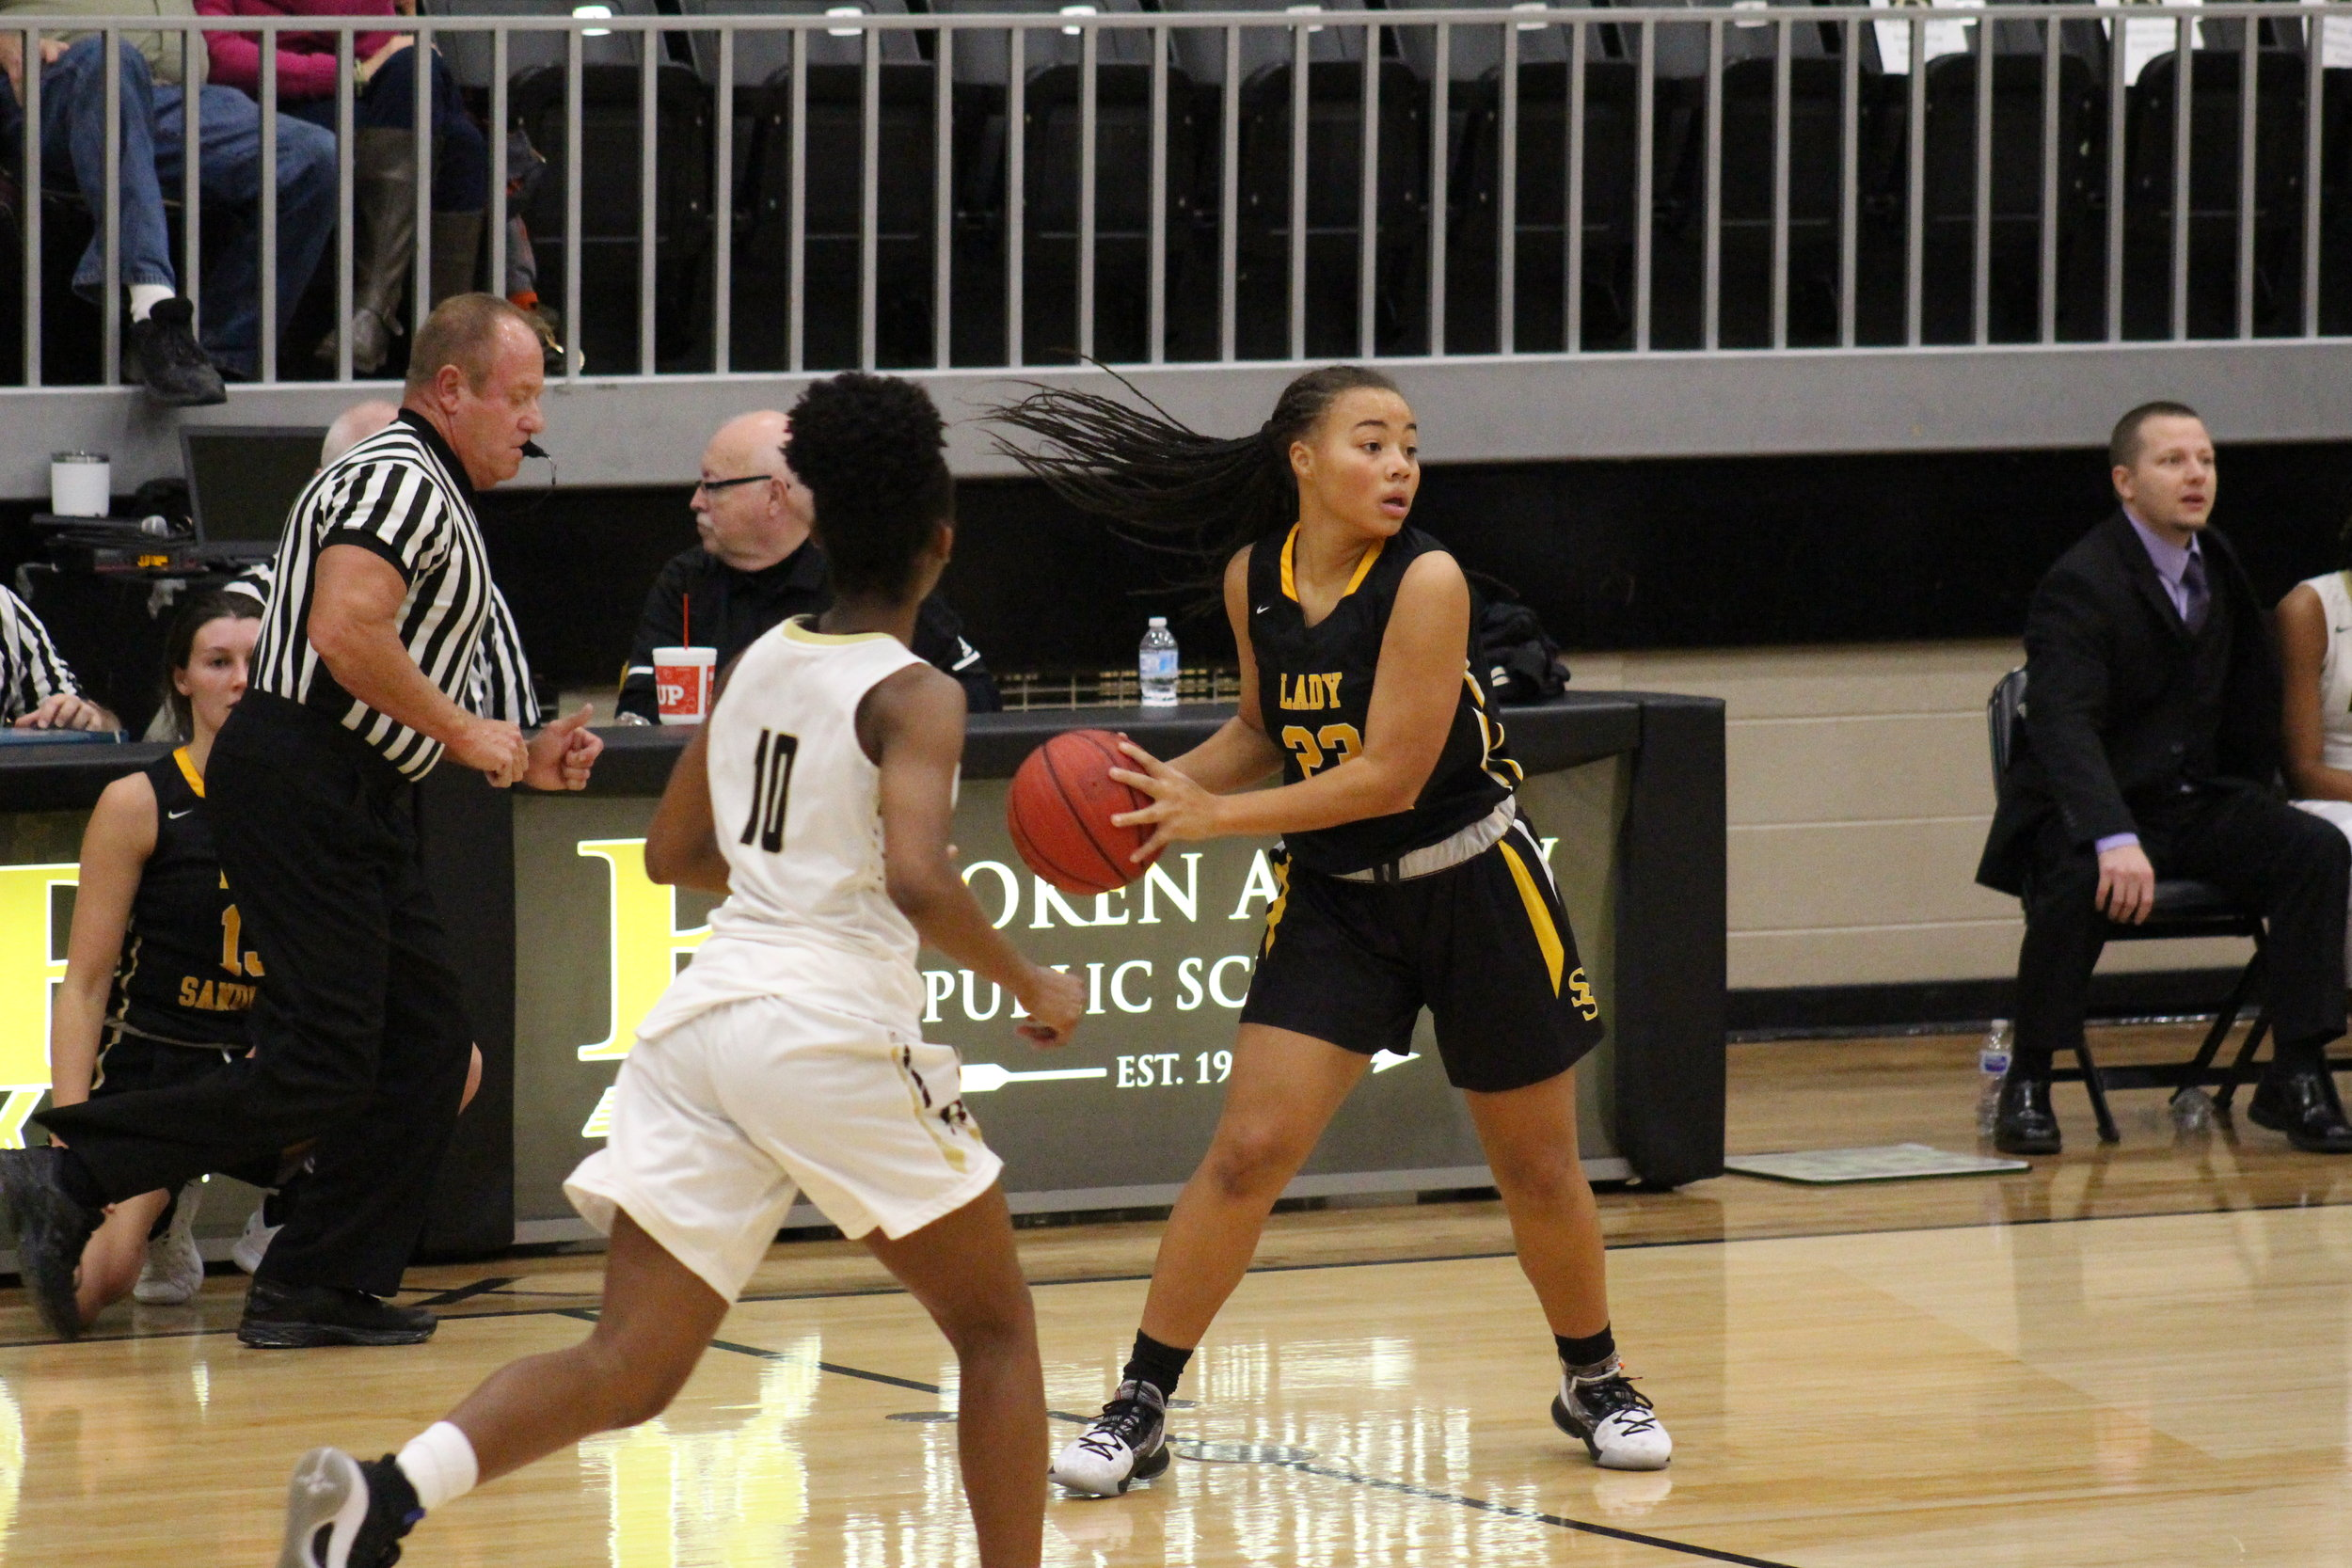 Sophomore Darrian Jordan has been a solid playmaker during her first varsity season.